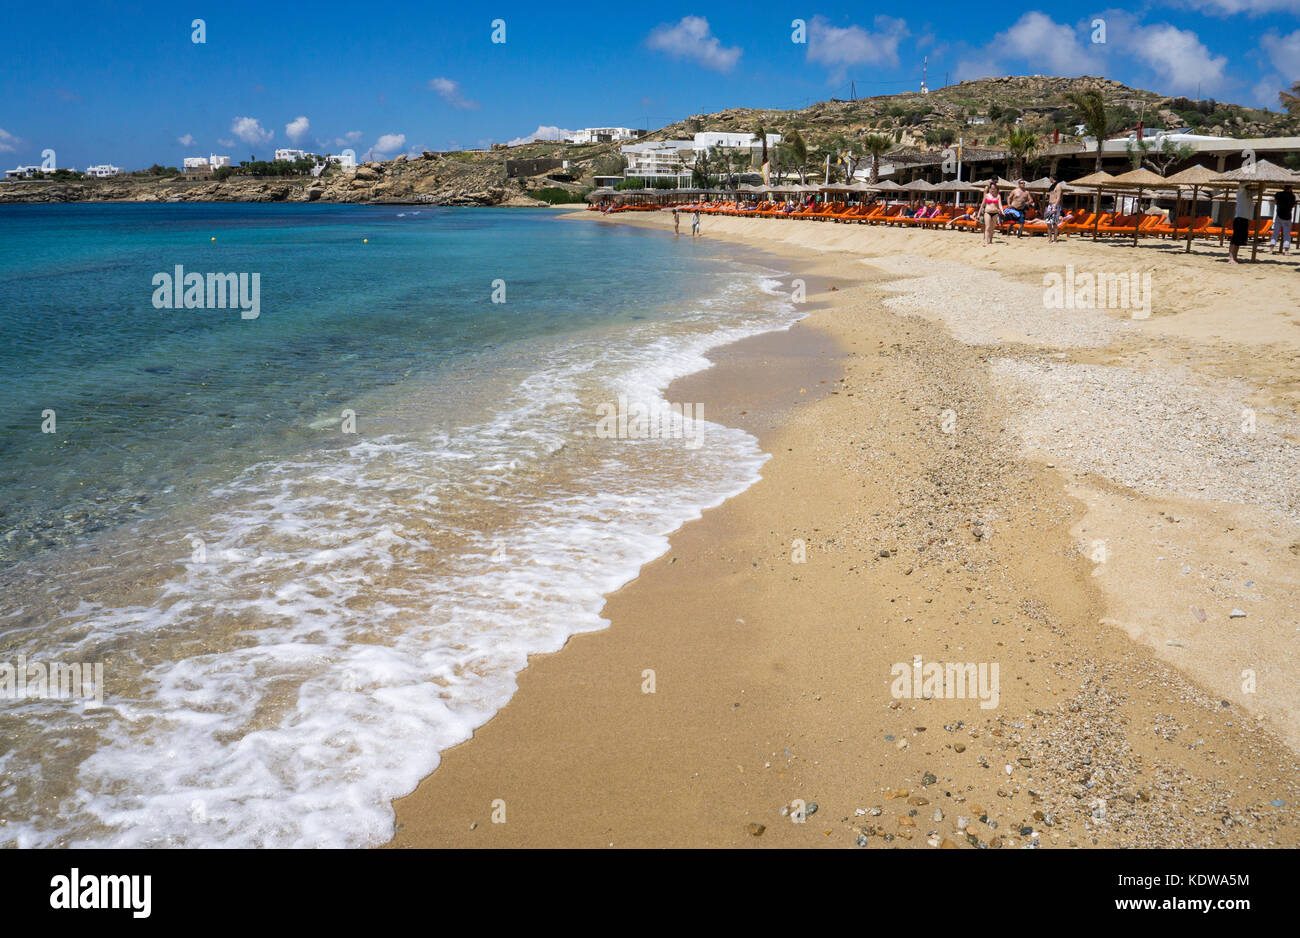 Paradise beach, popular beach at Mykonos - Stock Image